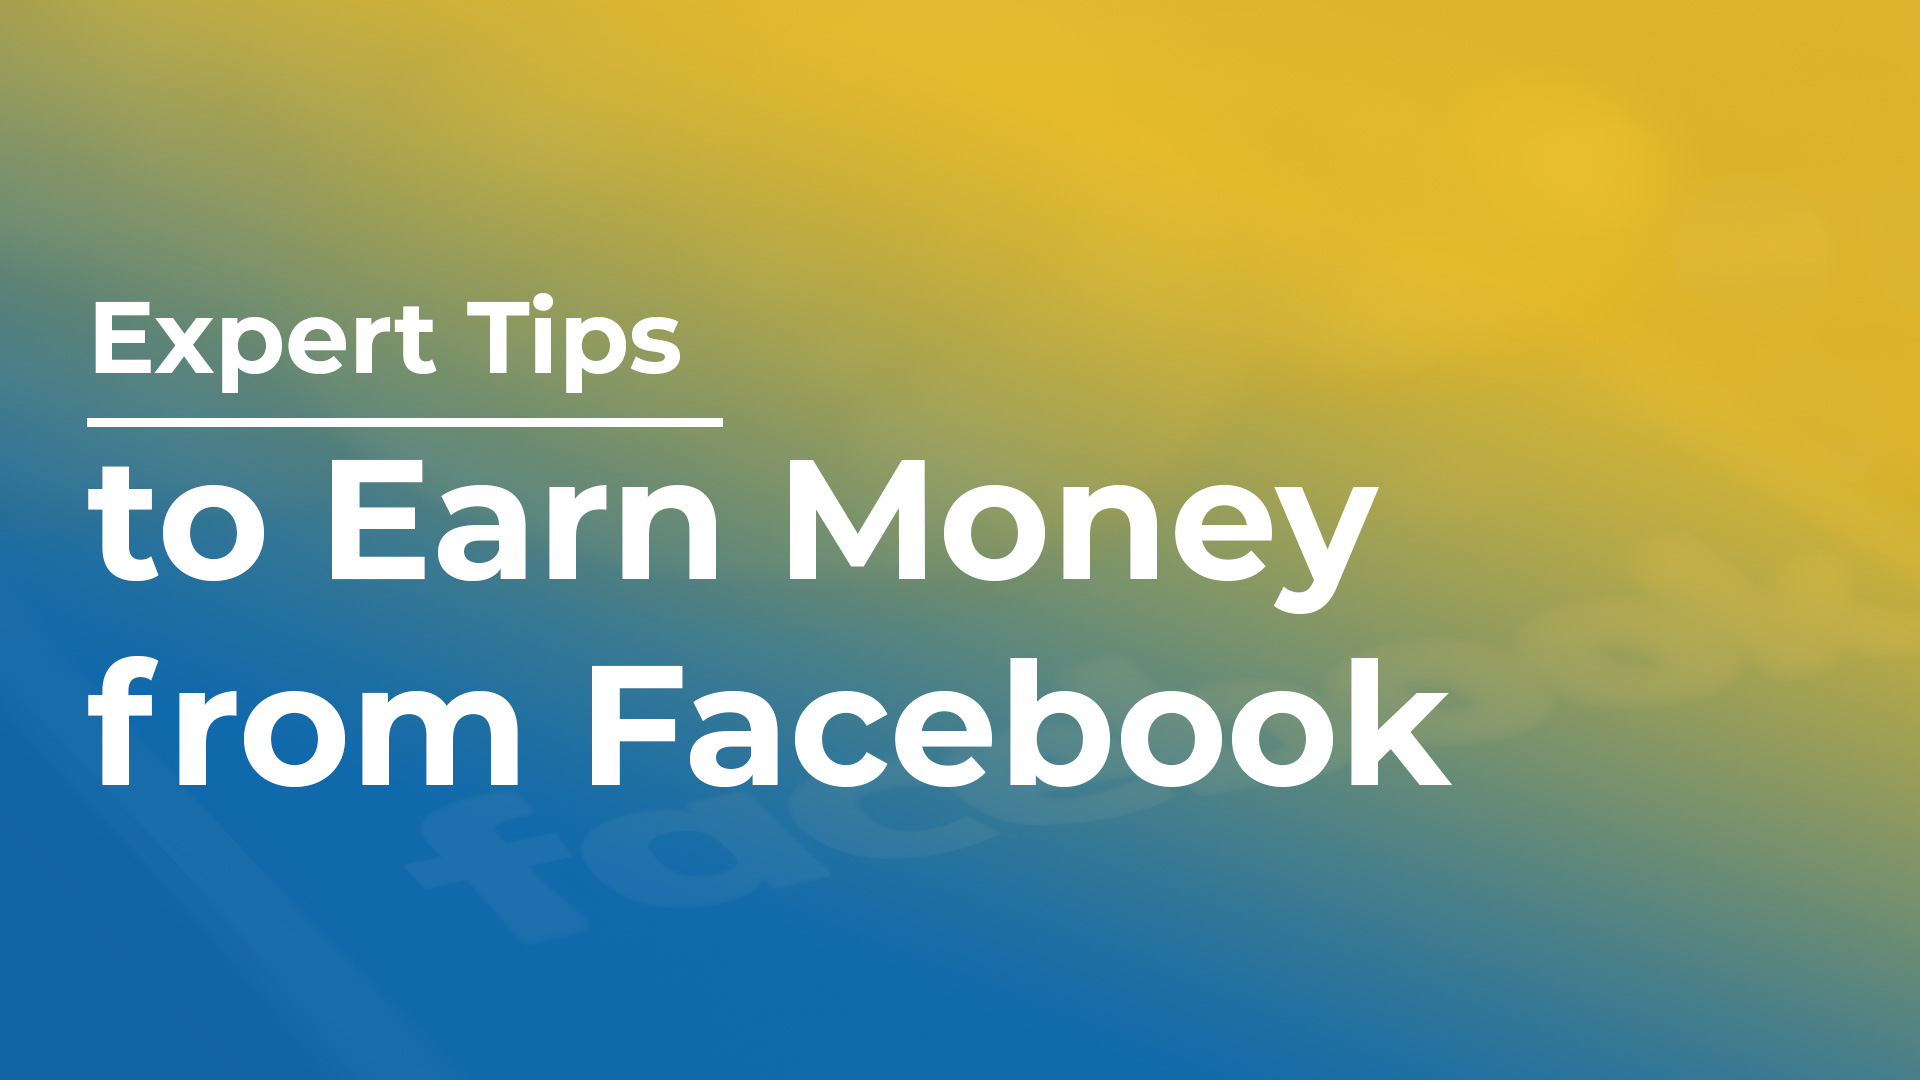 Expert Tips to Earn Money from Facebook